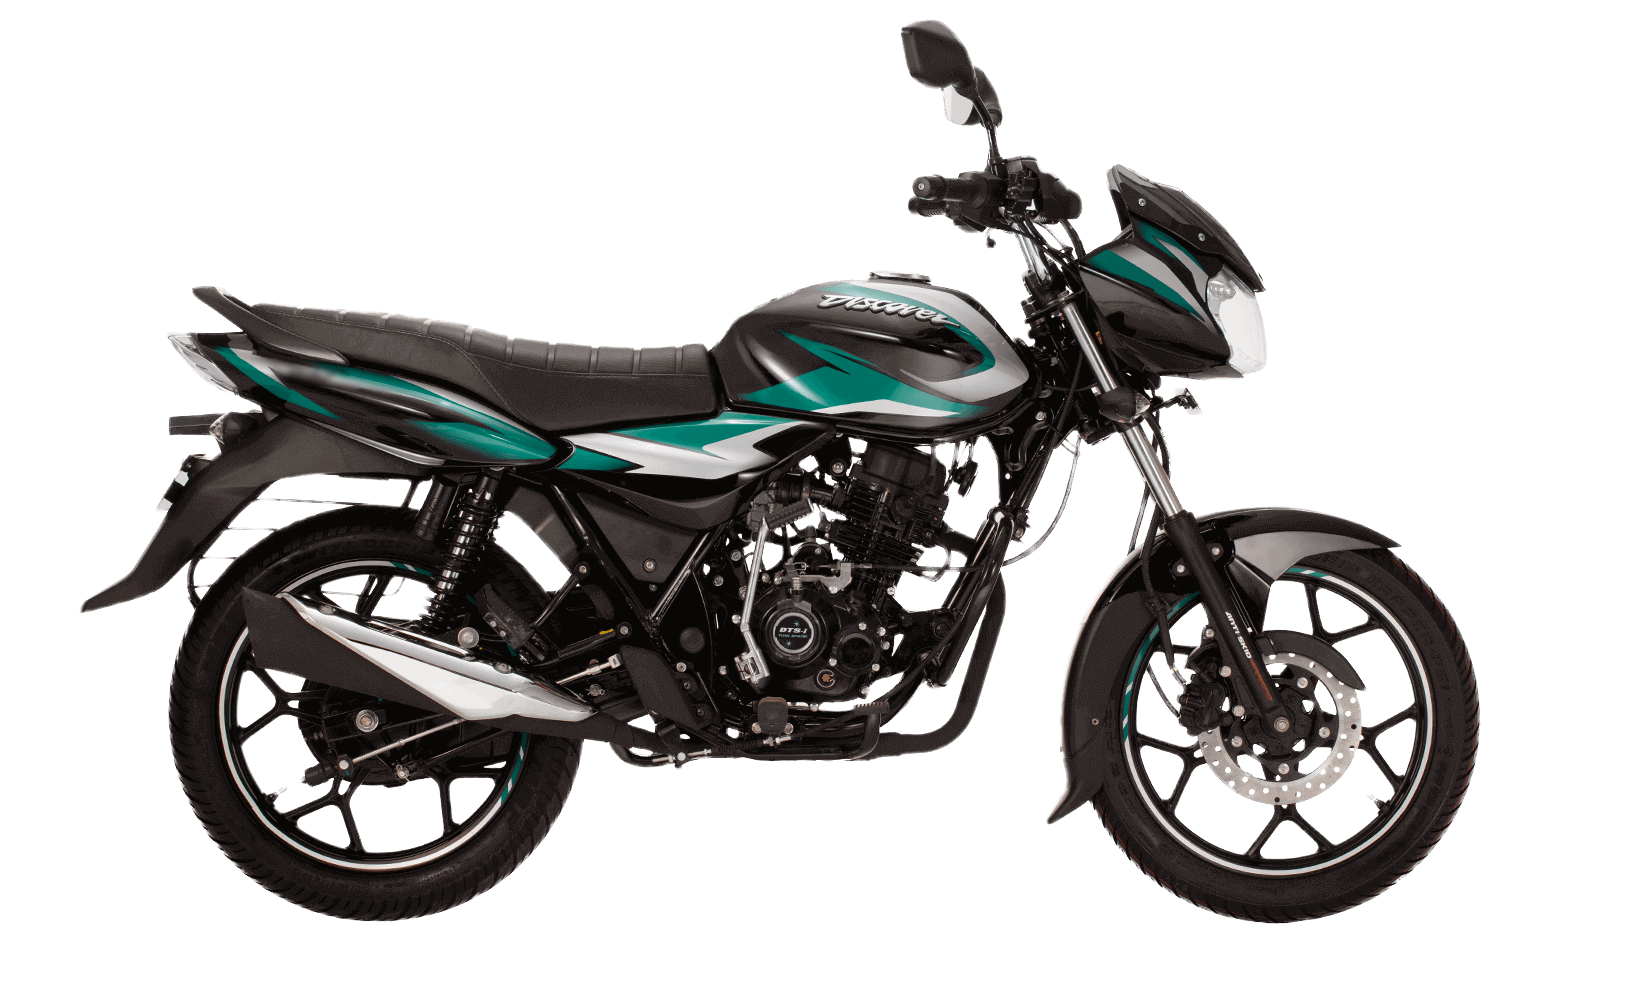 Black and green color bajaj discover 110cc disk new model motorcycle with dtsi engine side view